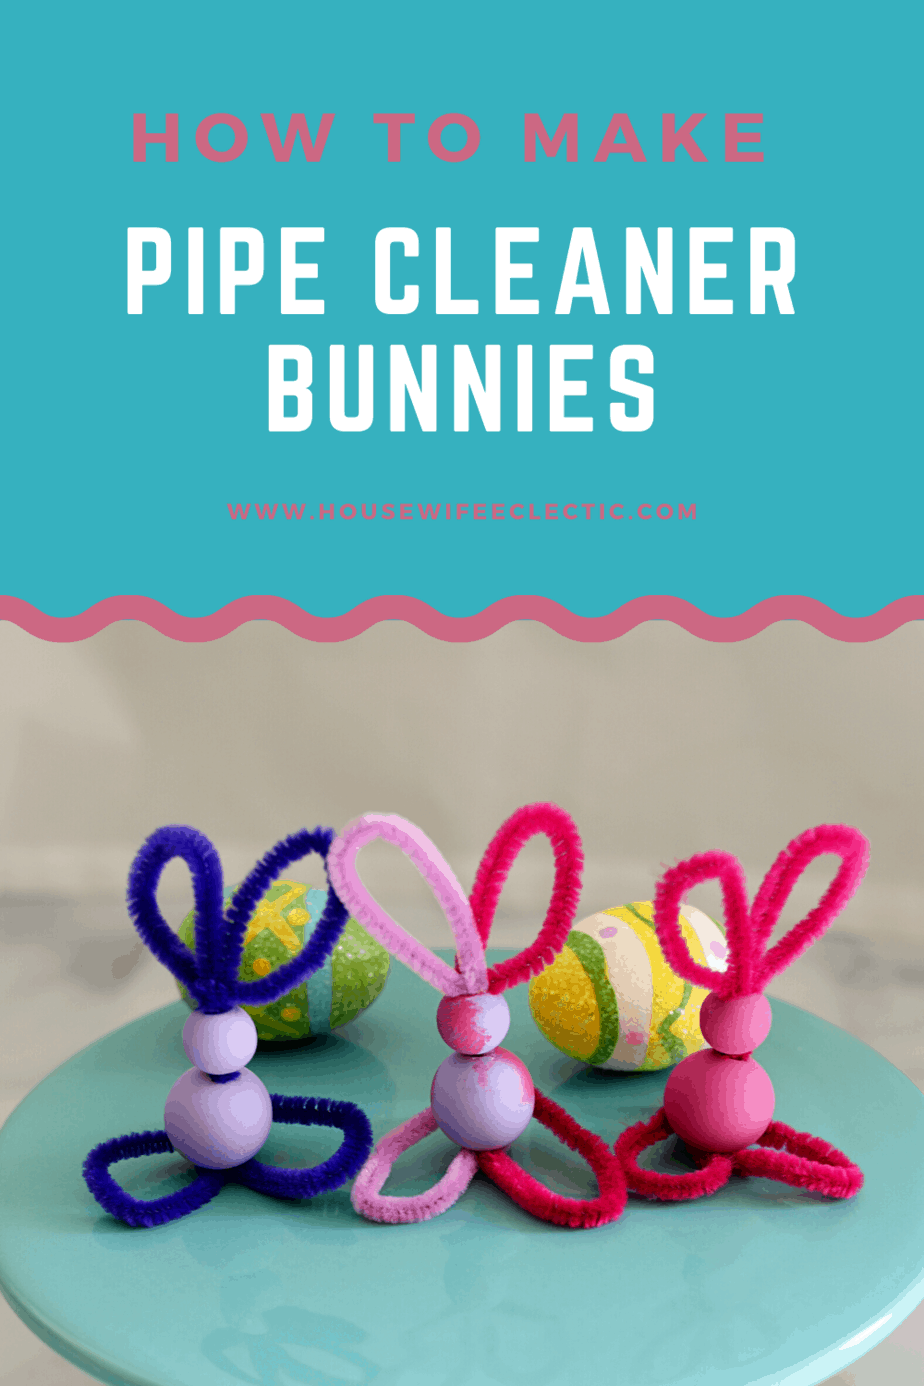 Housewife Eclectic: Pipe Cleaner Bunnies